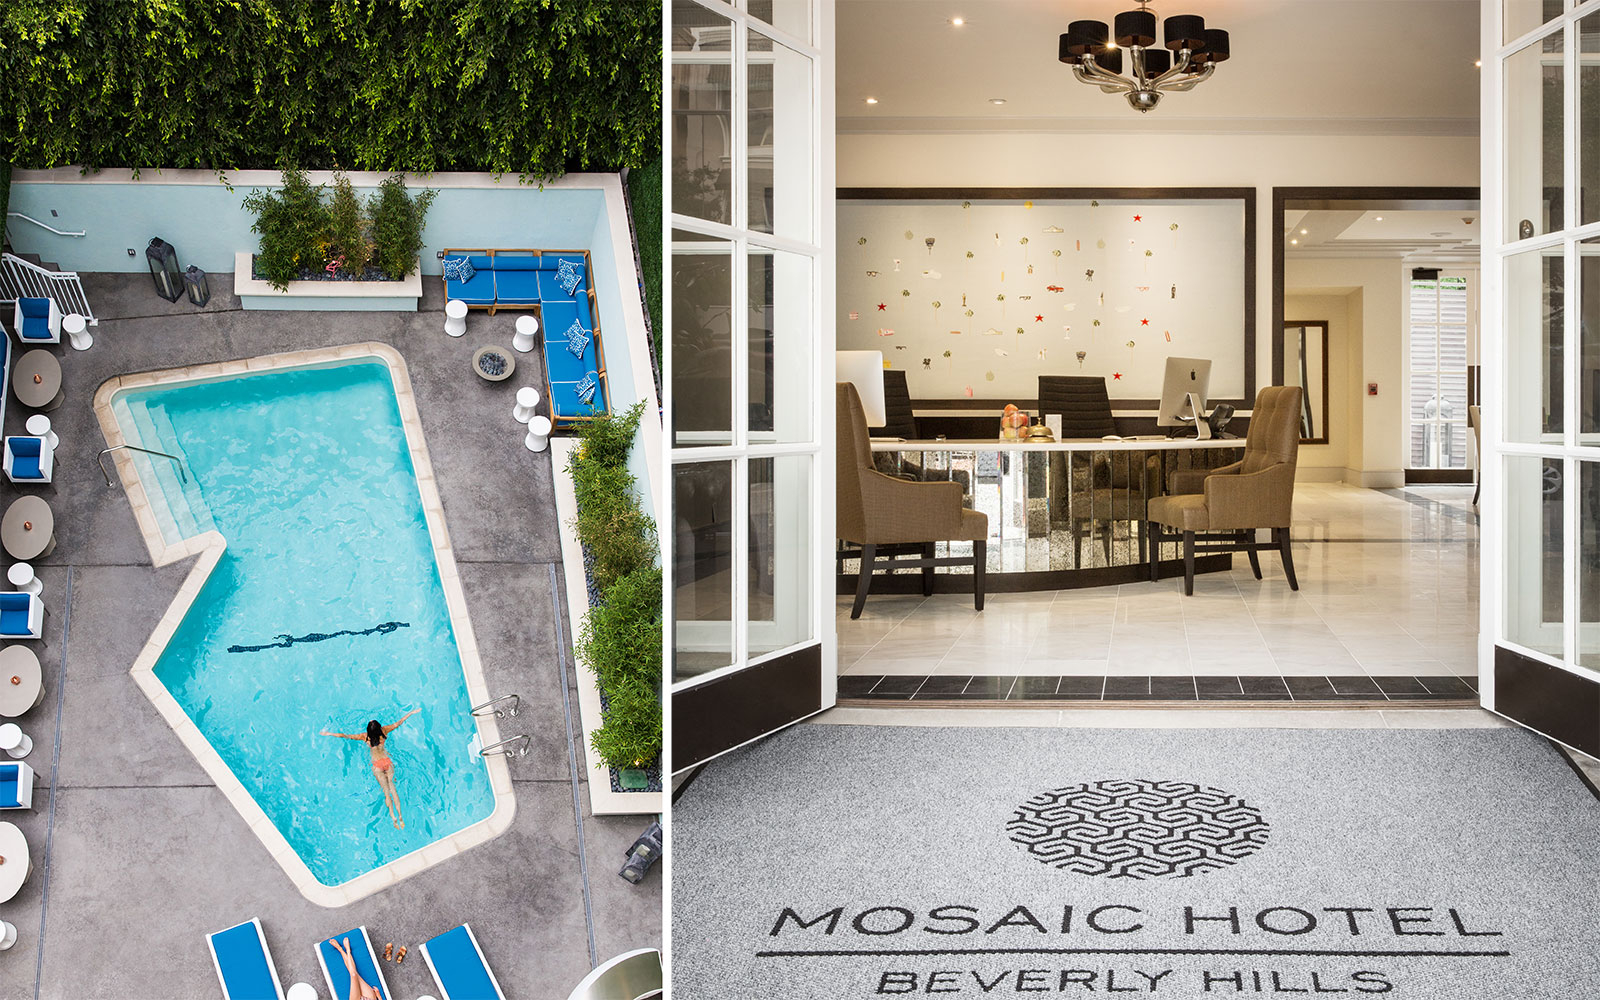 Beverly Hills Buzz The Mosaic Hotel S Luxe New Look